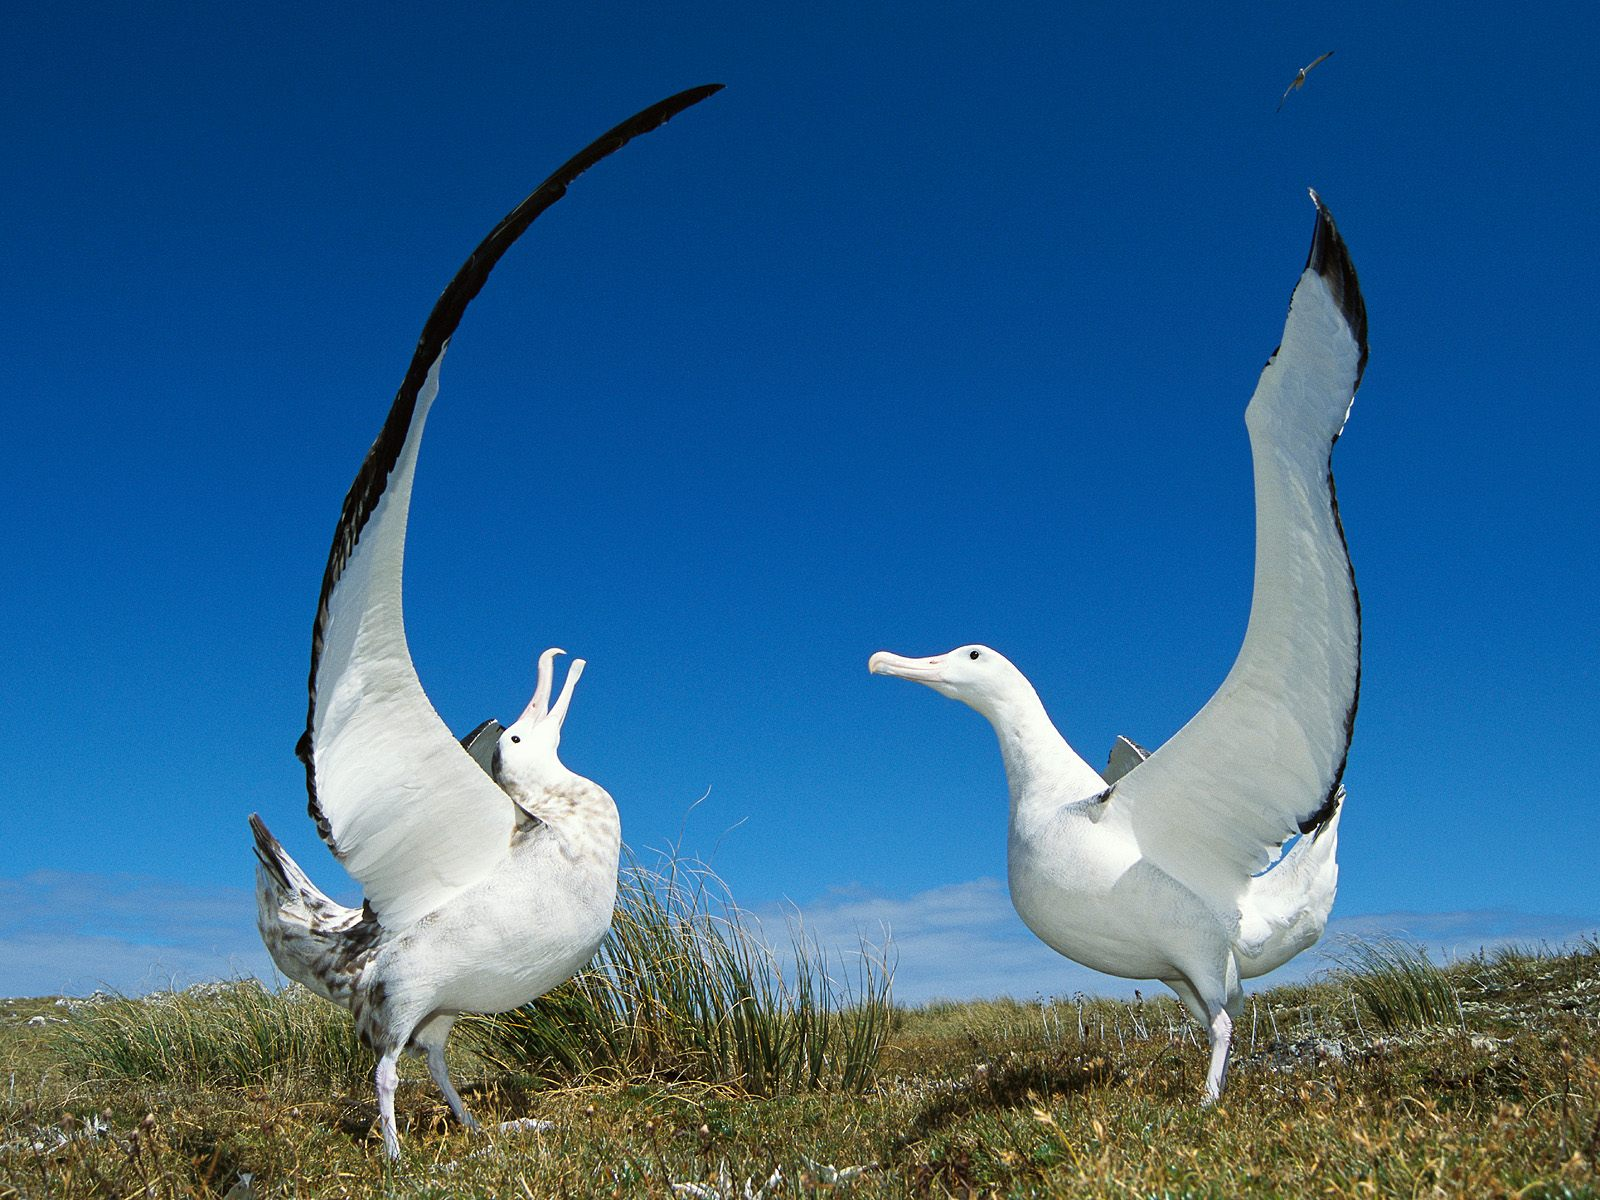 Albatross | The Life of Animals